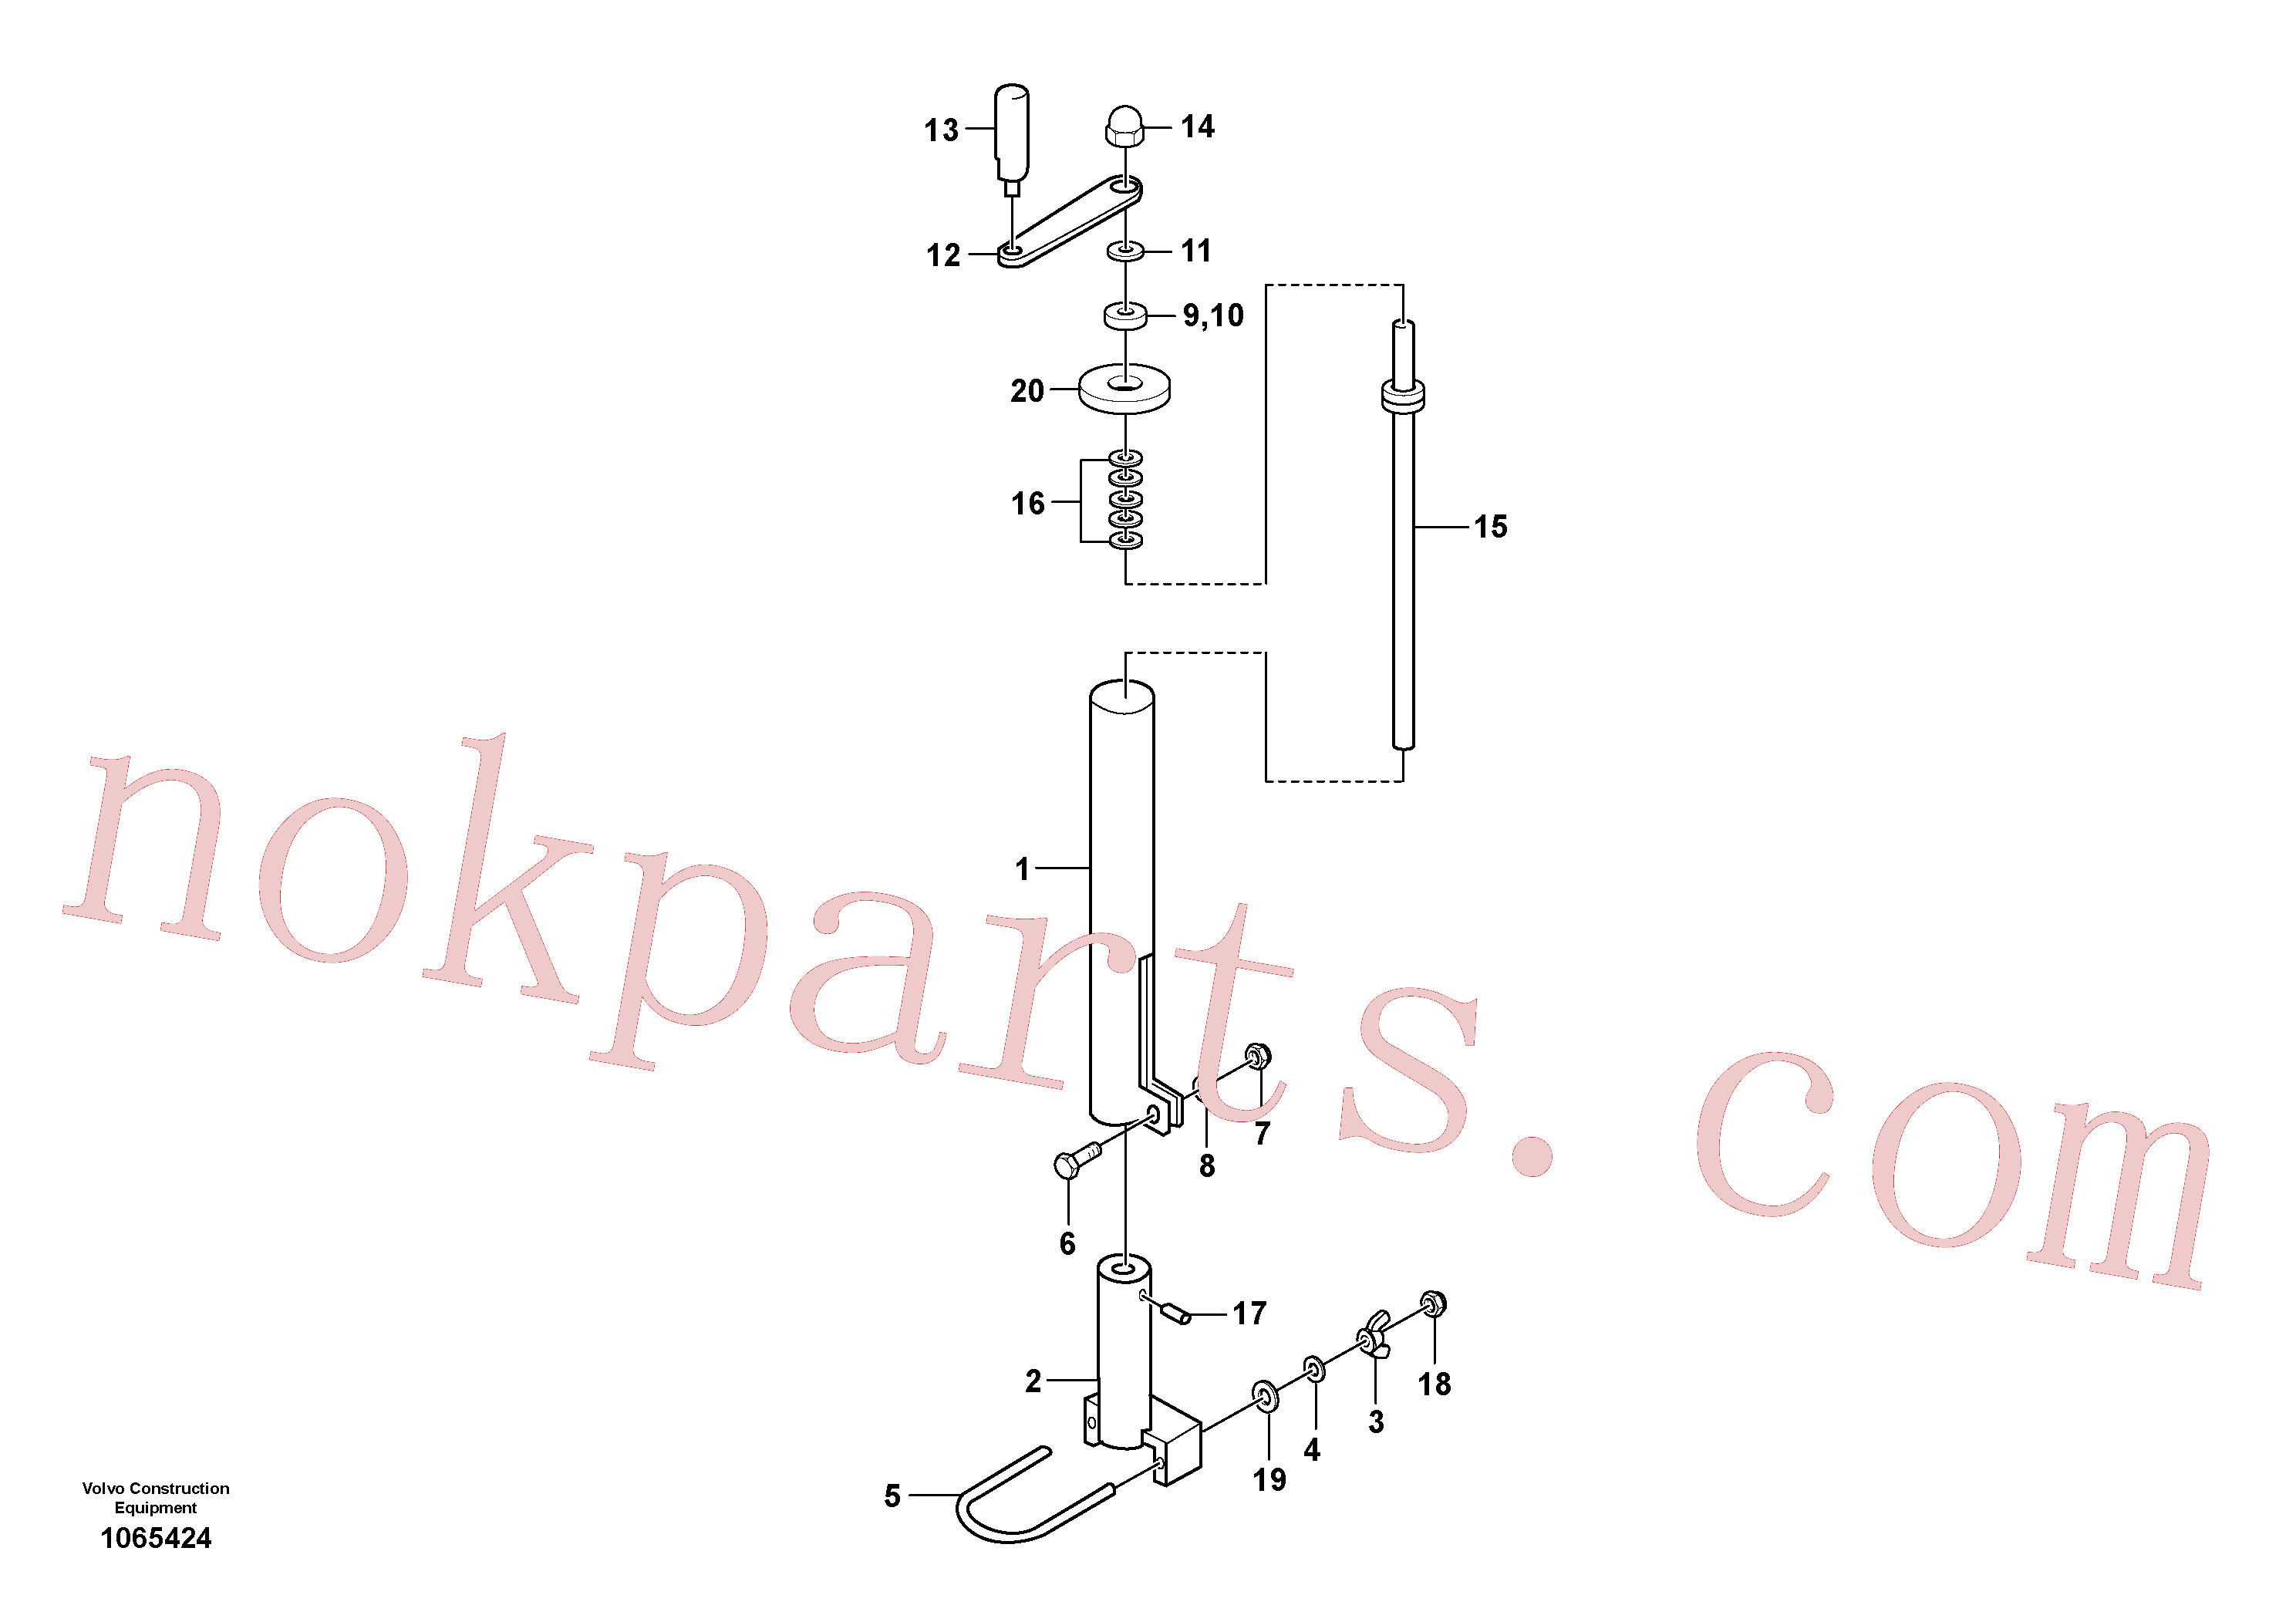 RM80811615 for Volvo Mechanical Control Assembly(1065424 assembly)